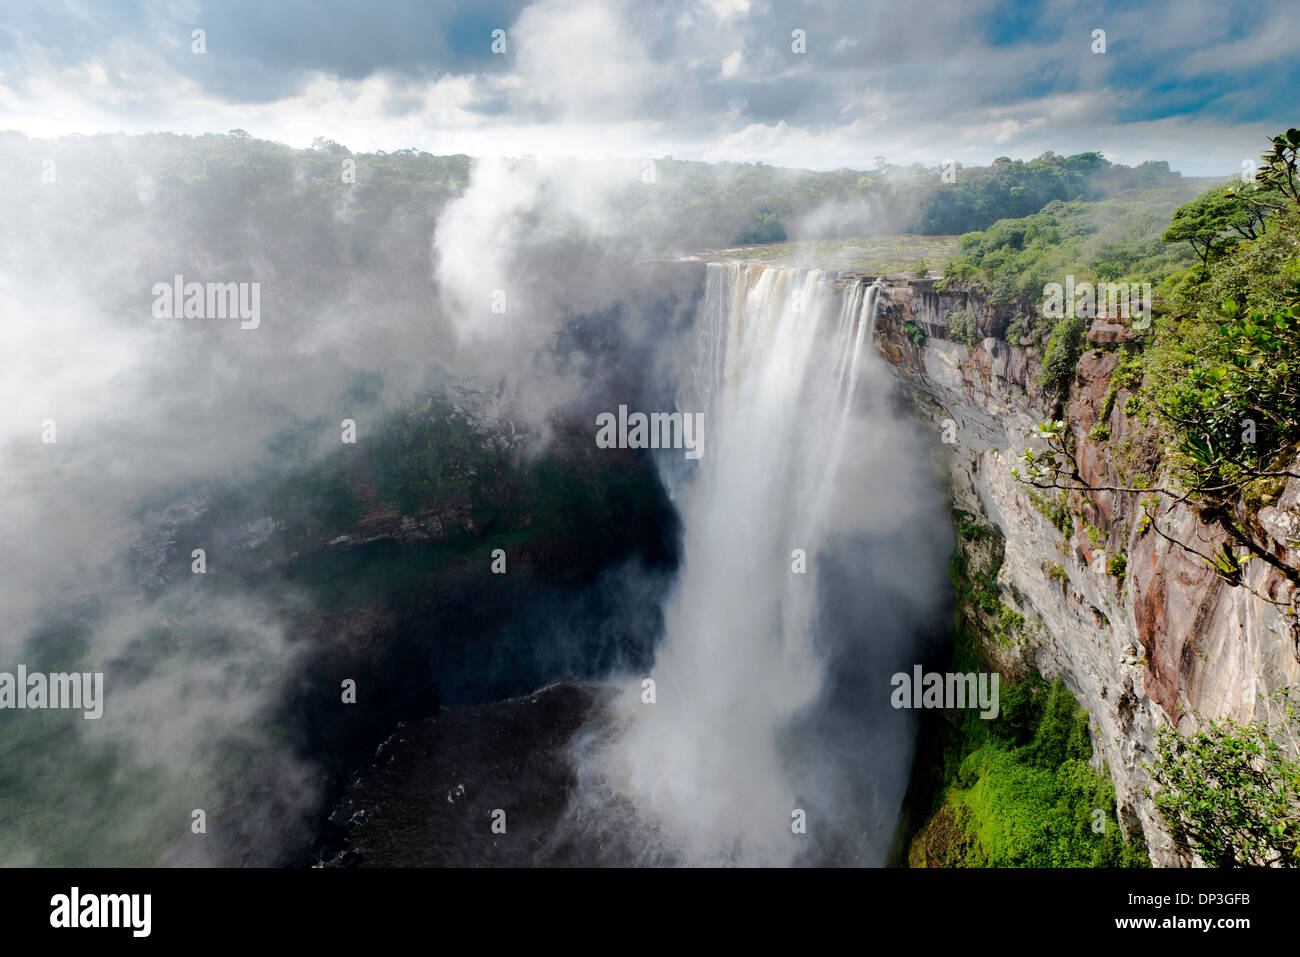 Kaieteur Falls, Kaieteur National Park, Guyana, Potato River, Combines huge volume of water with 822 foot drop - Stock Image